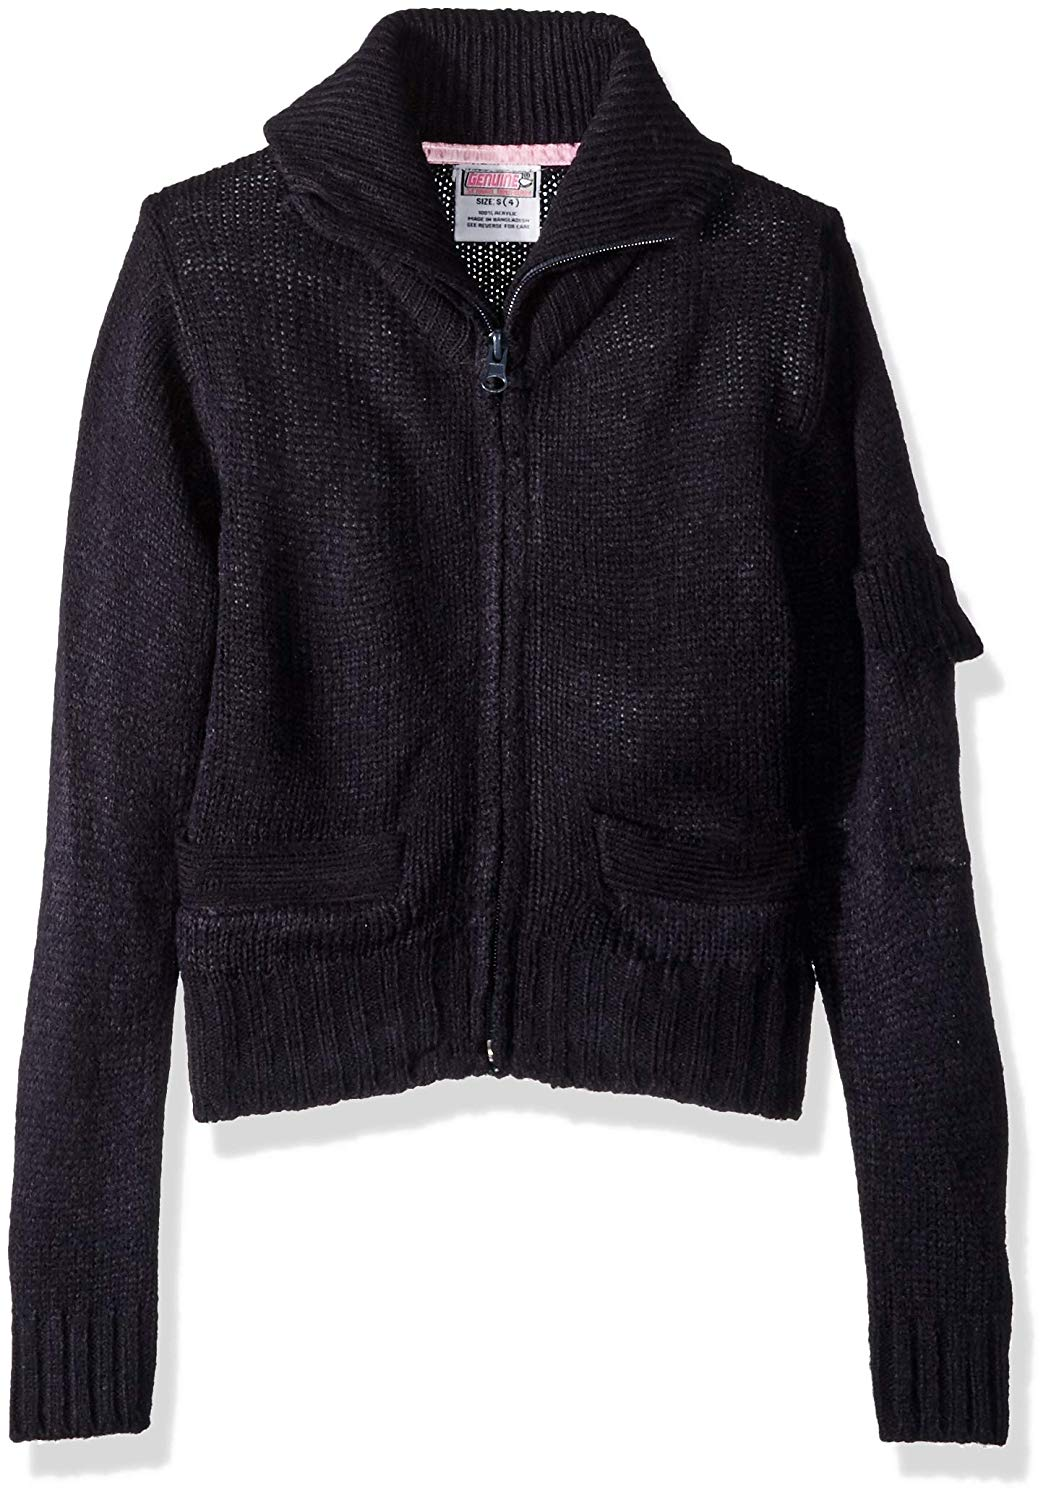 f2f4fb0a1dfd Get Quotations · Genuine Girls  Zip Front Mock Neck Cardigan Sweater with  Pocket on Sleeve